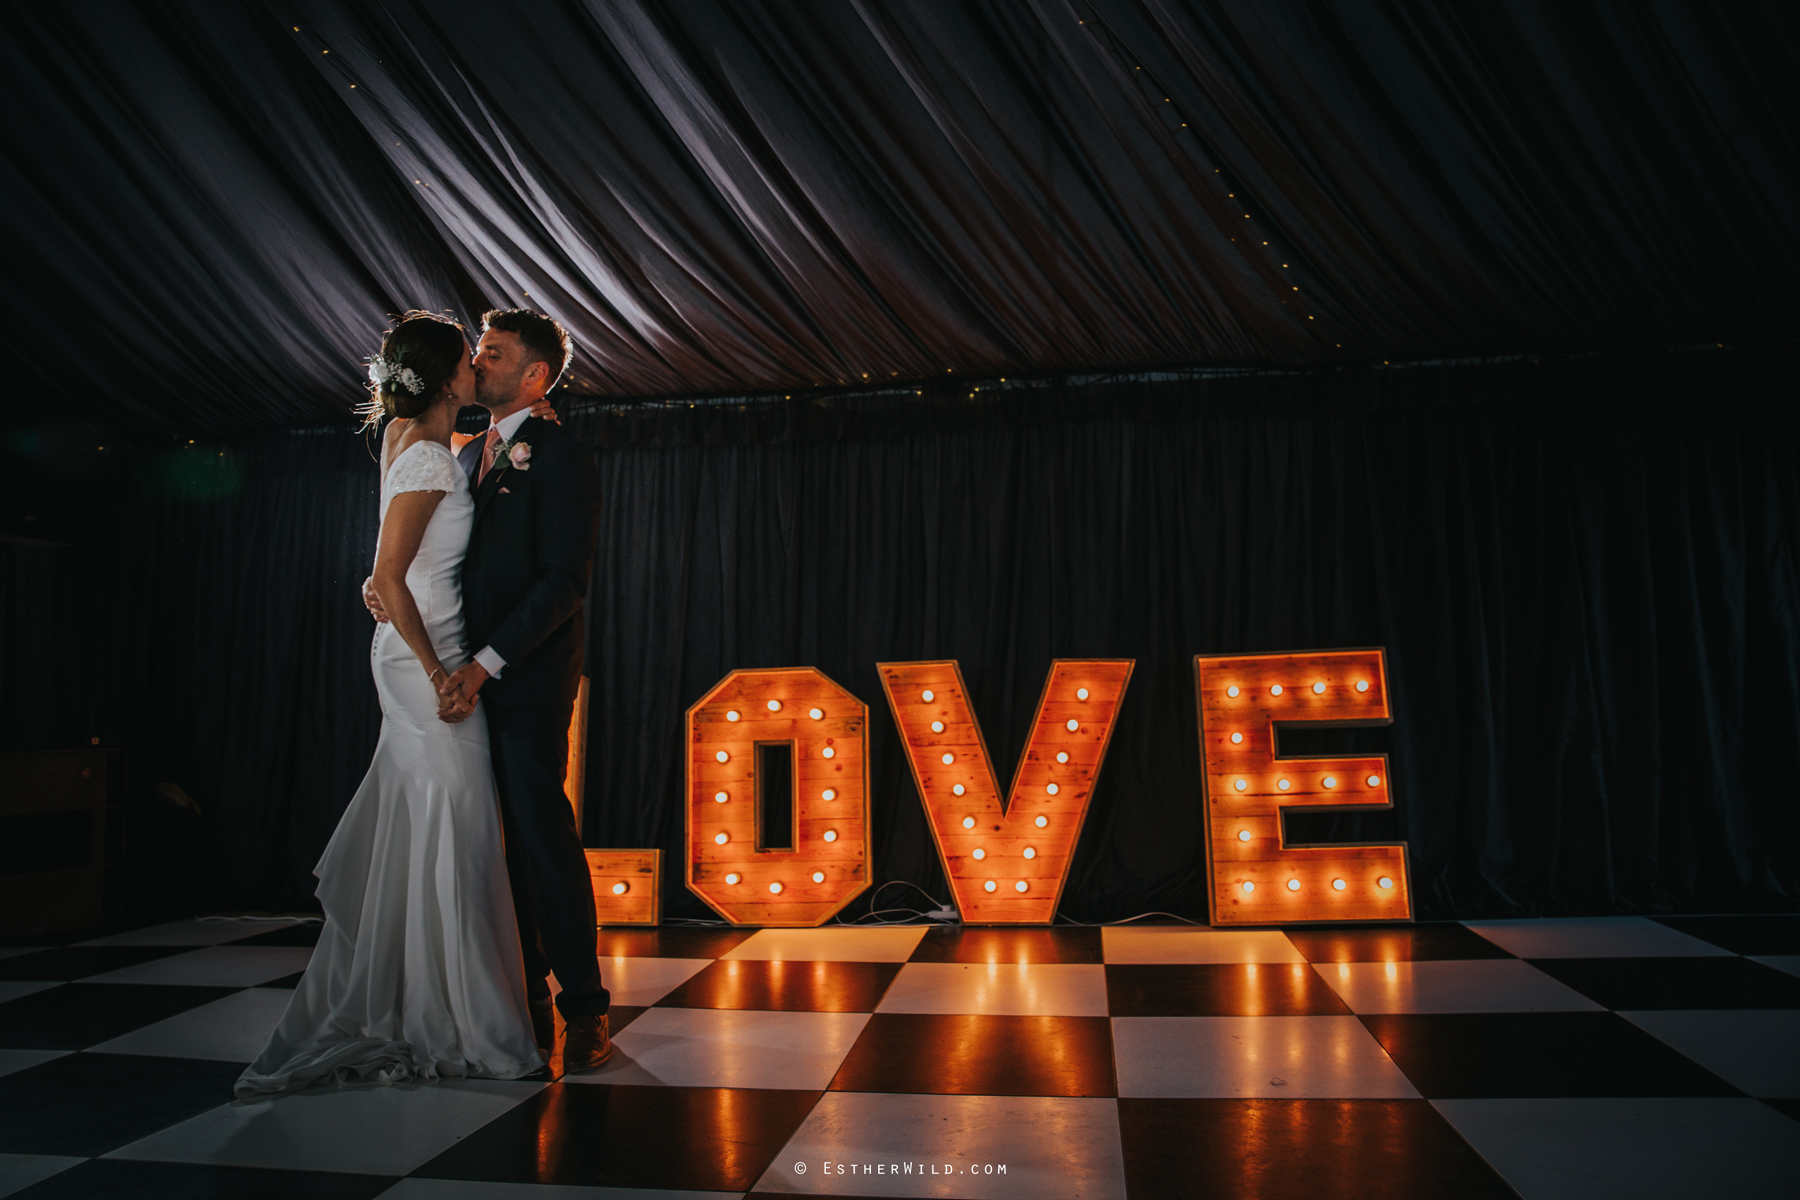 Wootton_Wedding_Copyright_Esther_Wild_Photographer_IMG_3145.jpg